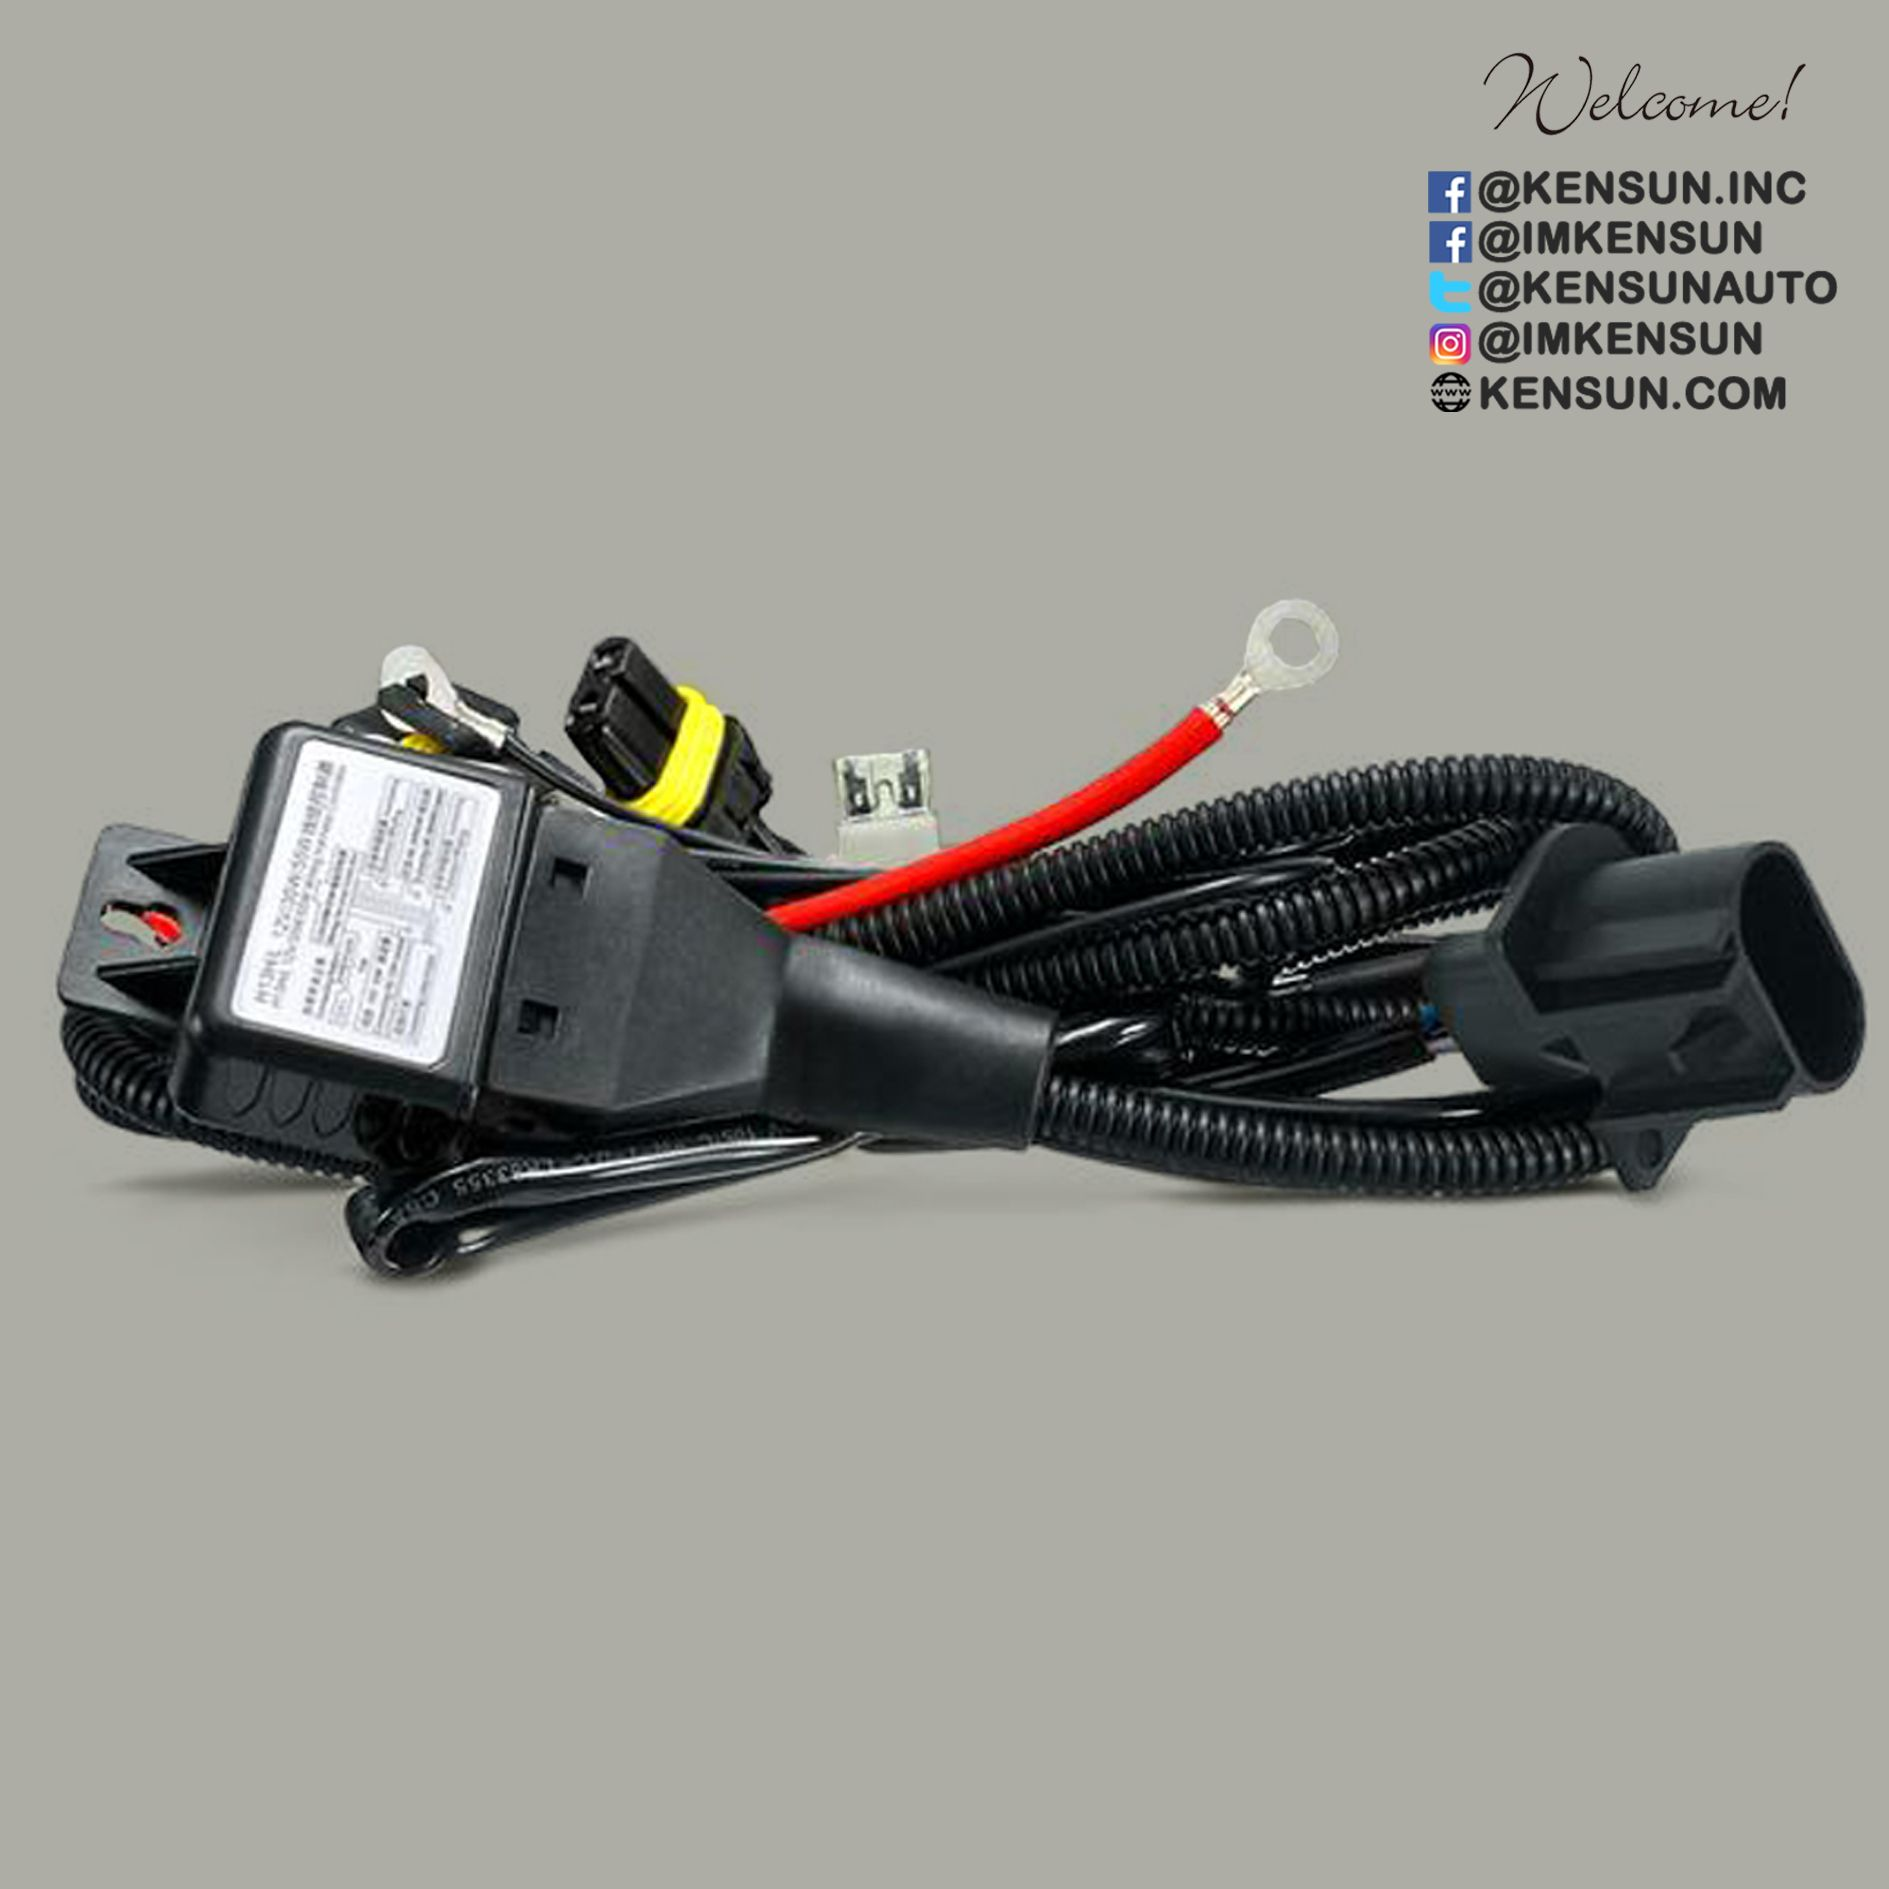 H13 Bi Xenon Relay Harness Serves As A Direct Power Conduit From Car